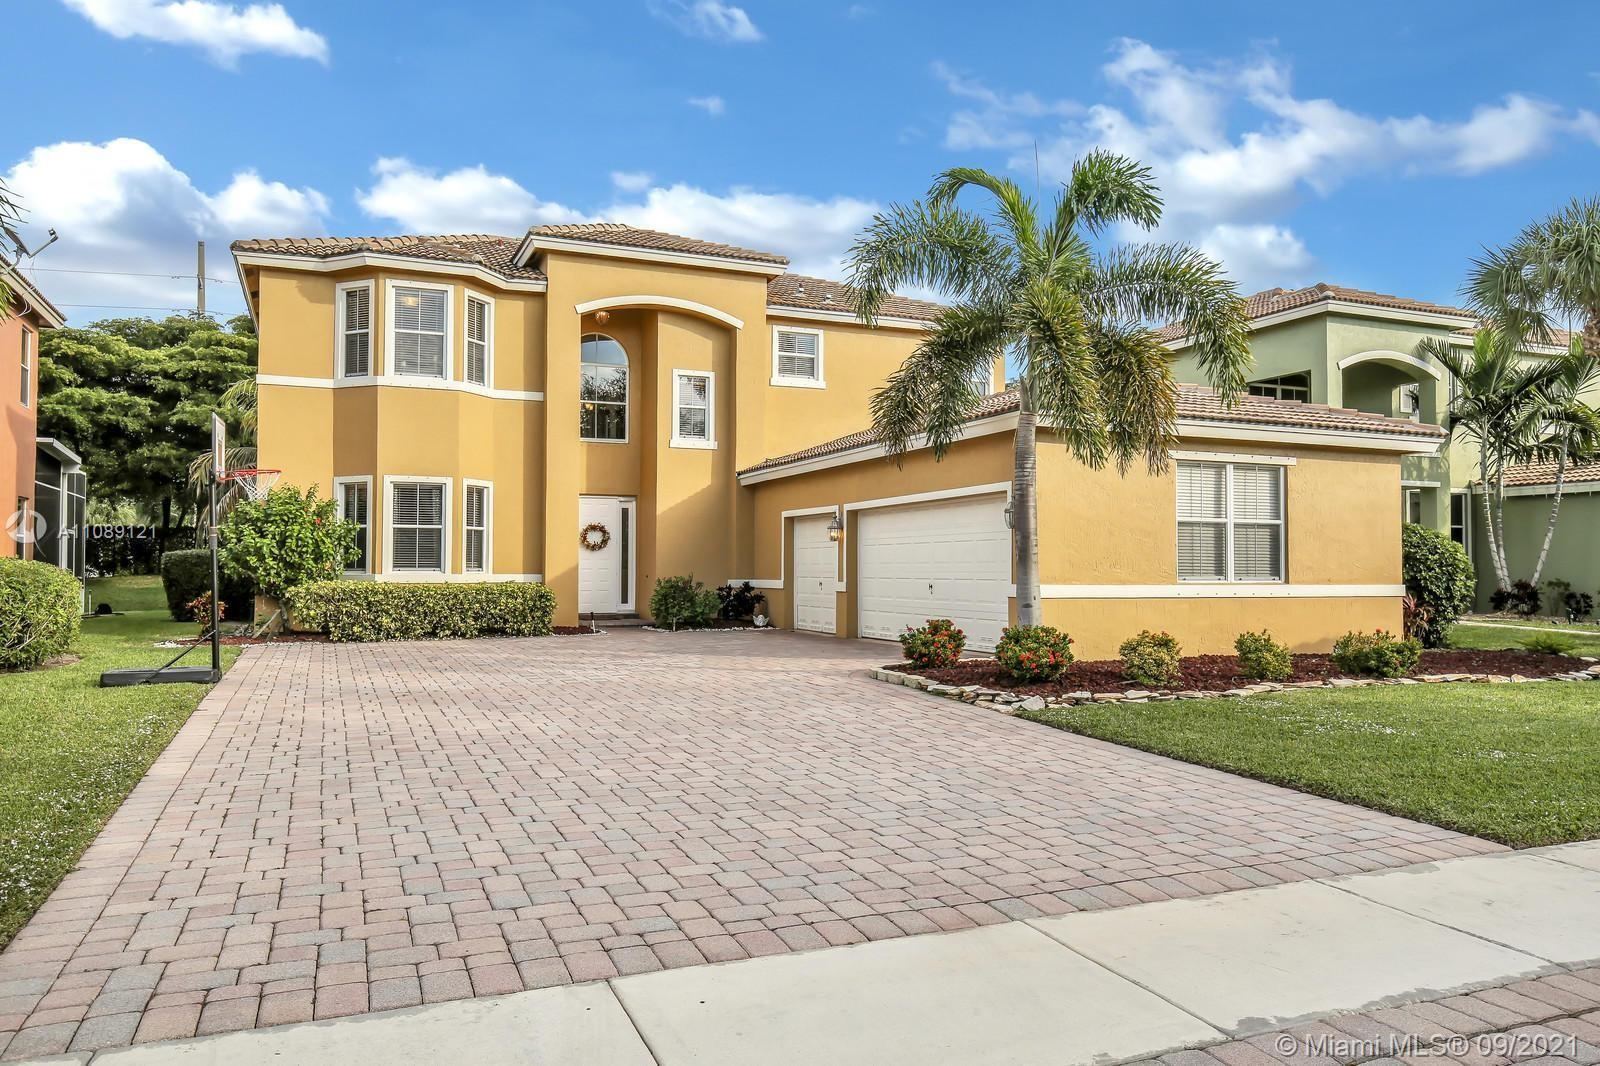 Welcome to the exquisite, upscale community of, Journey's End. Located in the heart of Lake Worth an